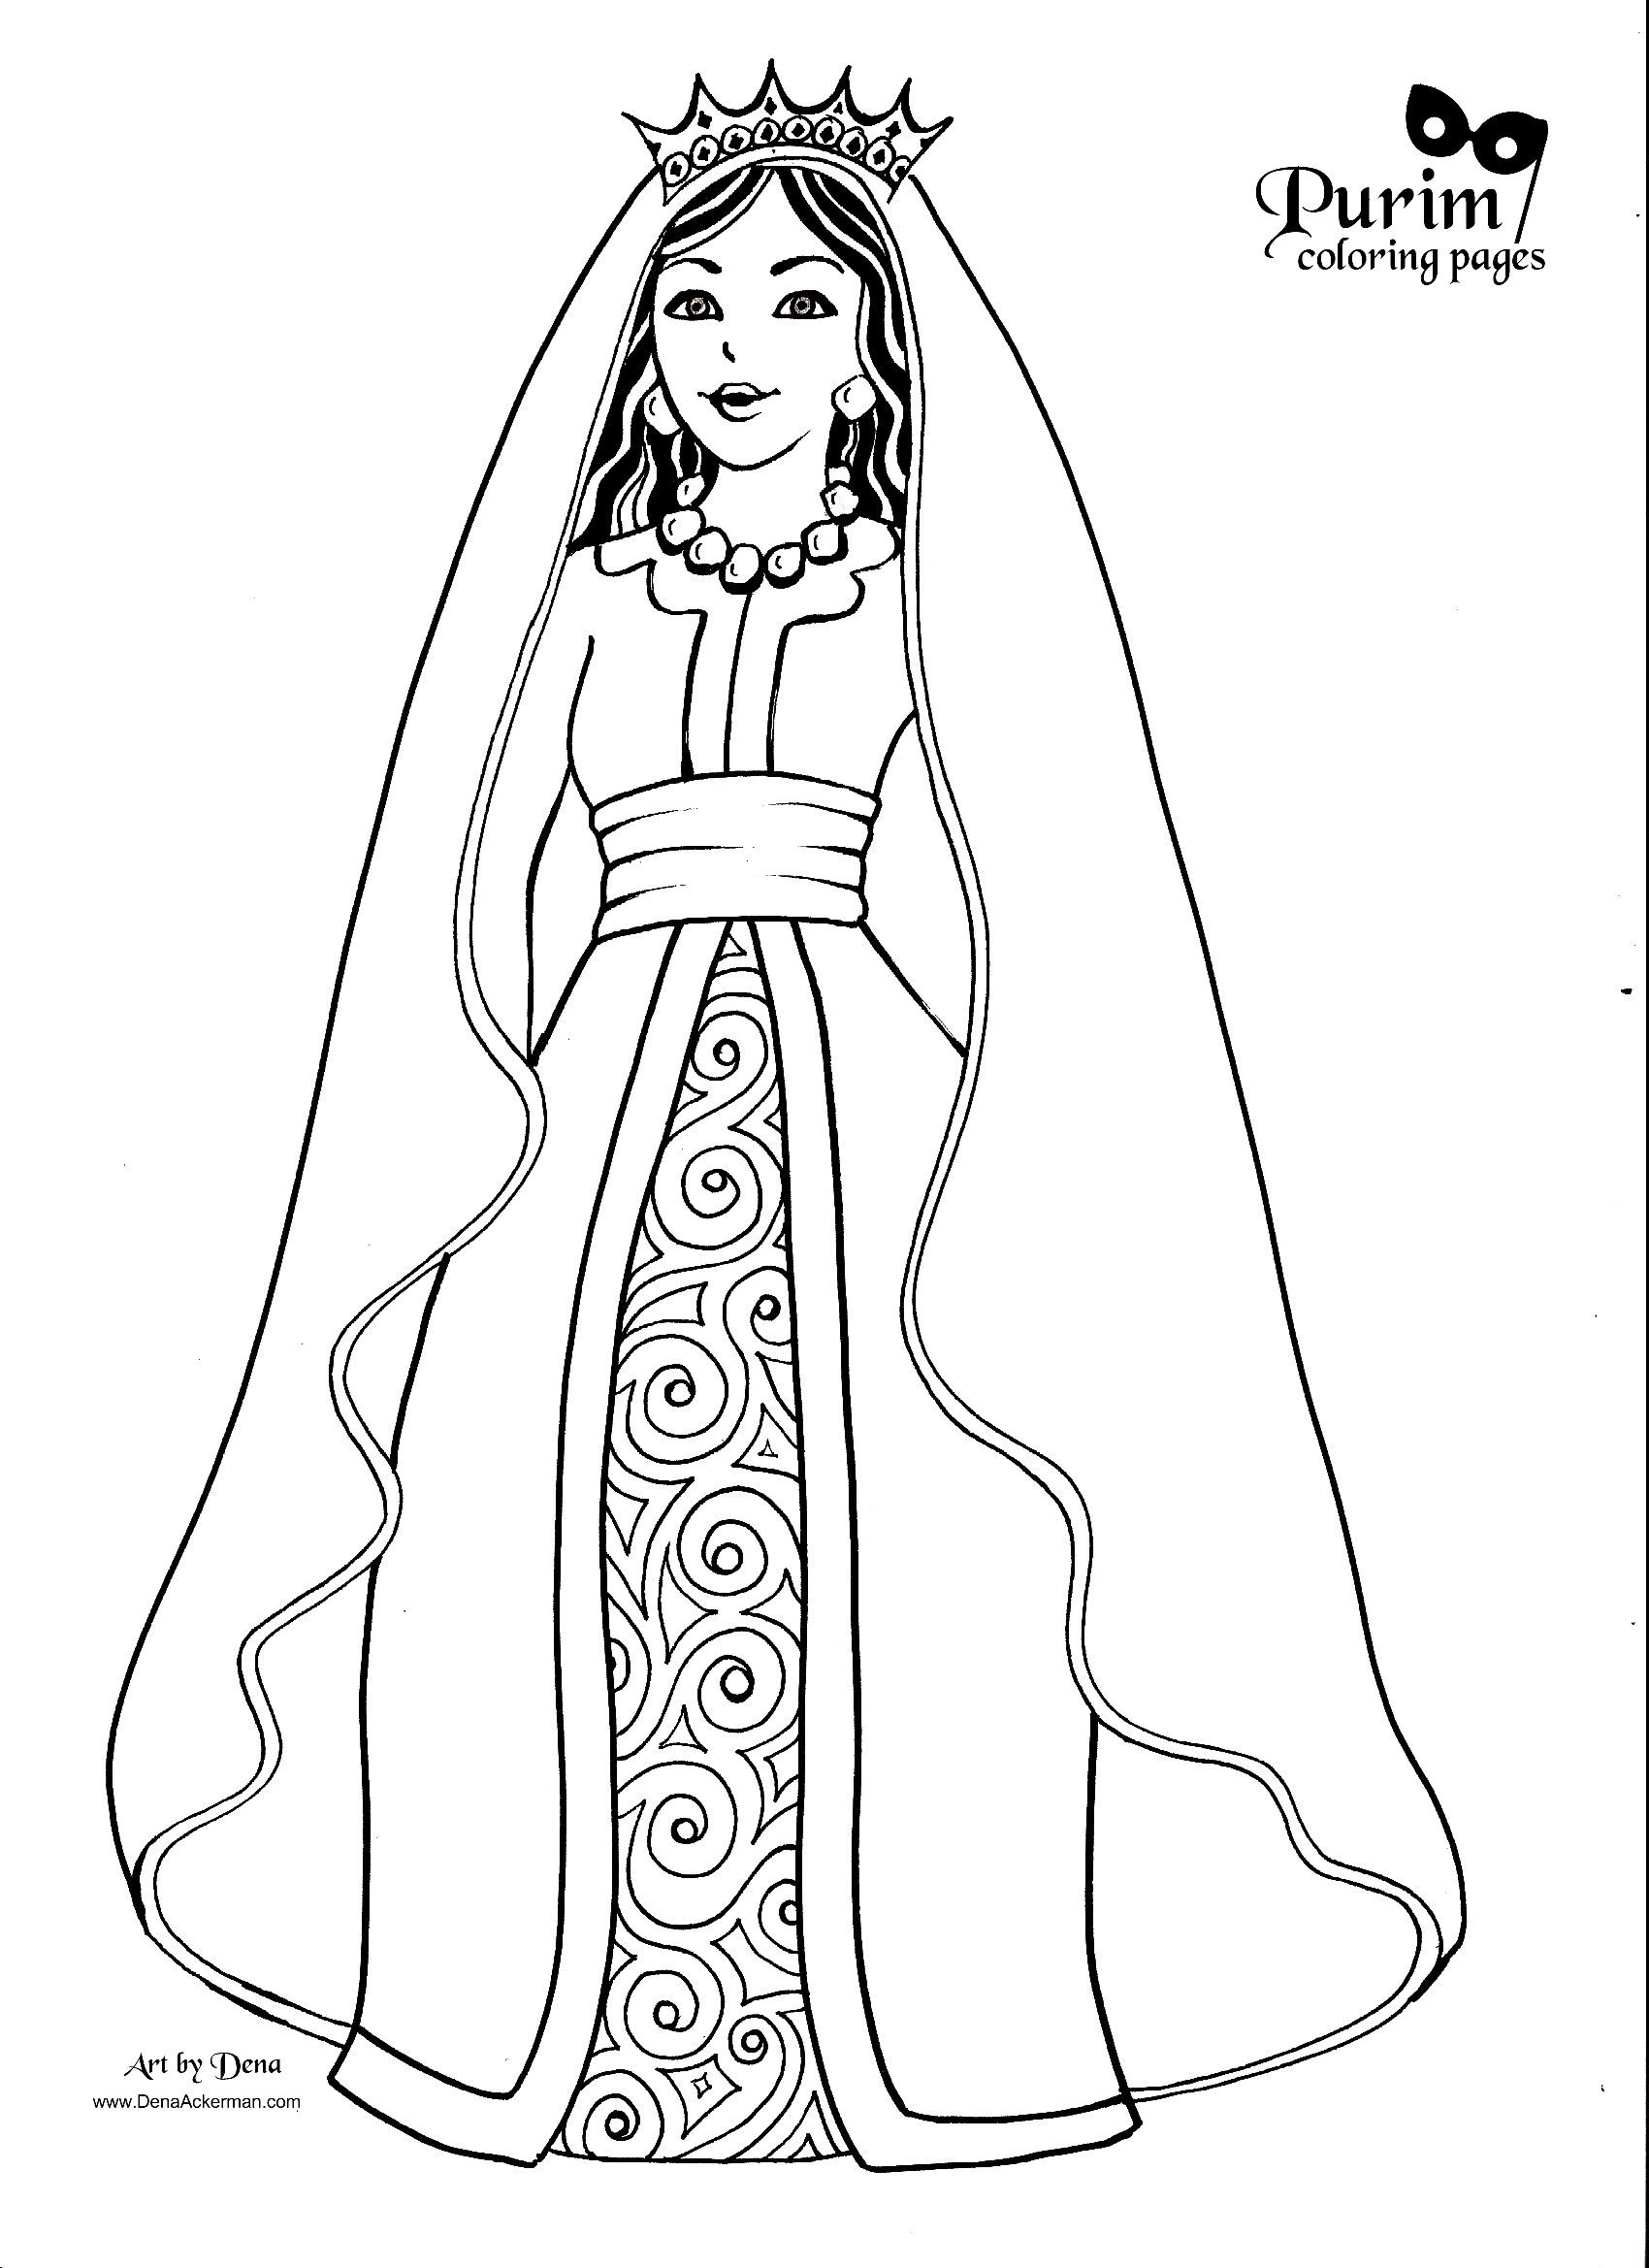 esther coloring pages esther wordt een koningin super coloring bijbel coloring esther pages